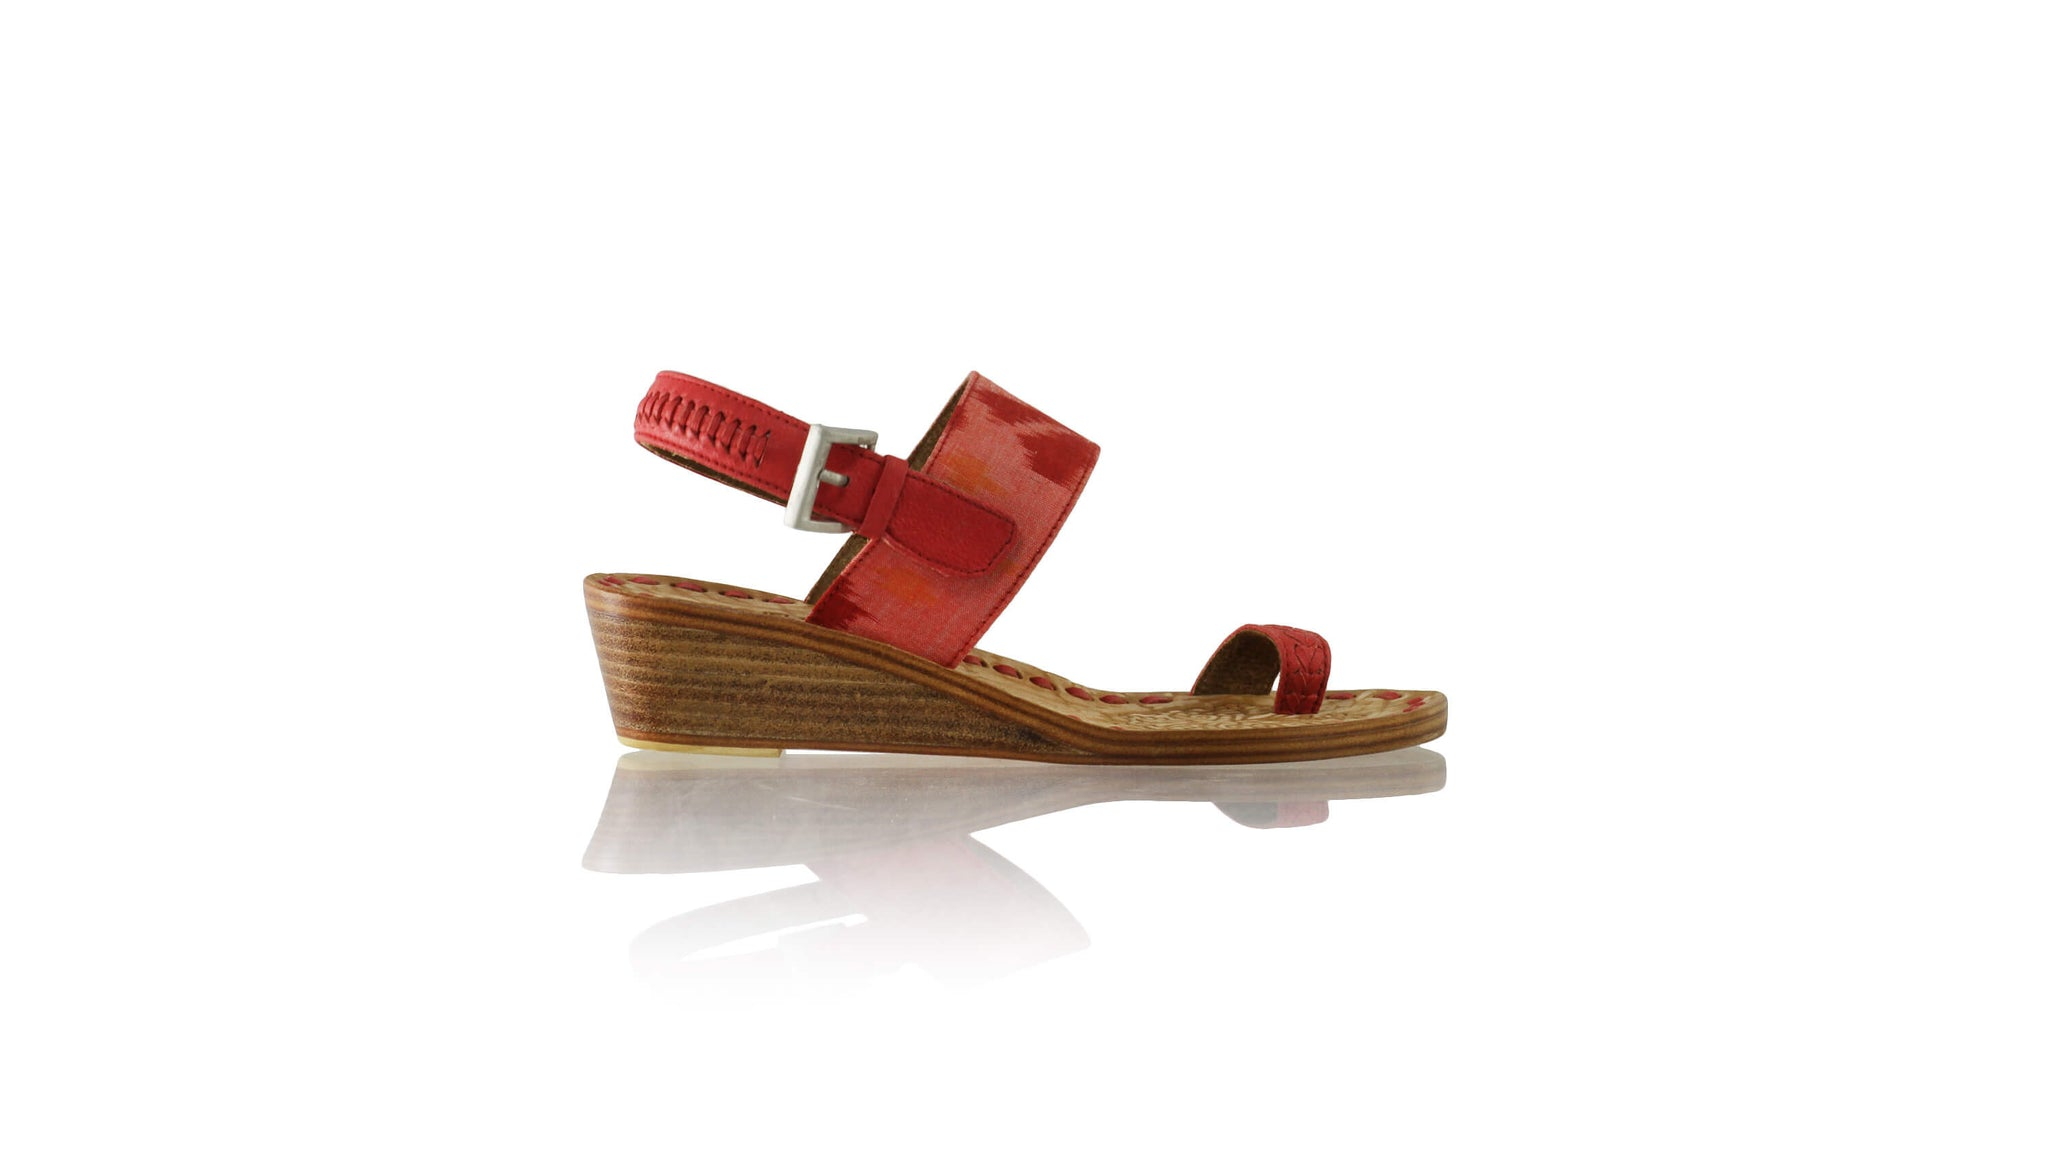 Leather-shoes-Prana 35mm Wedge - Red & Light Red Handwoven Ikat-sandals wedges-NILUH DJELANTIK-NILUH DJELANTIK